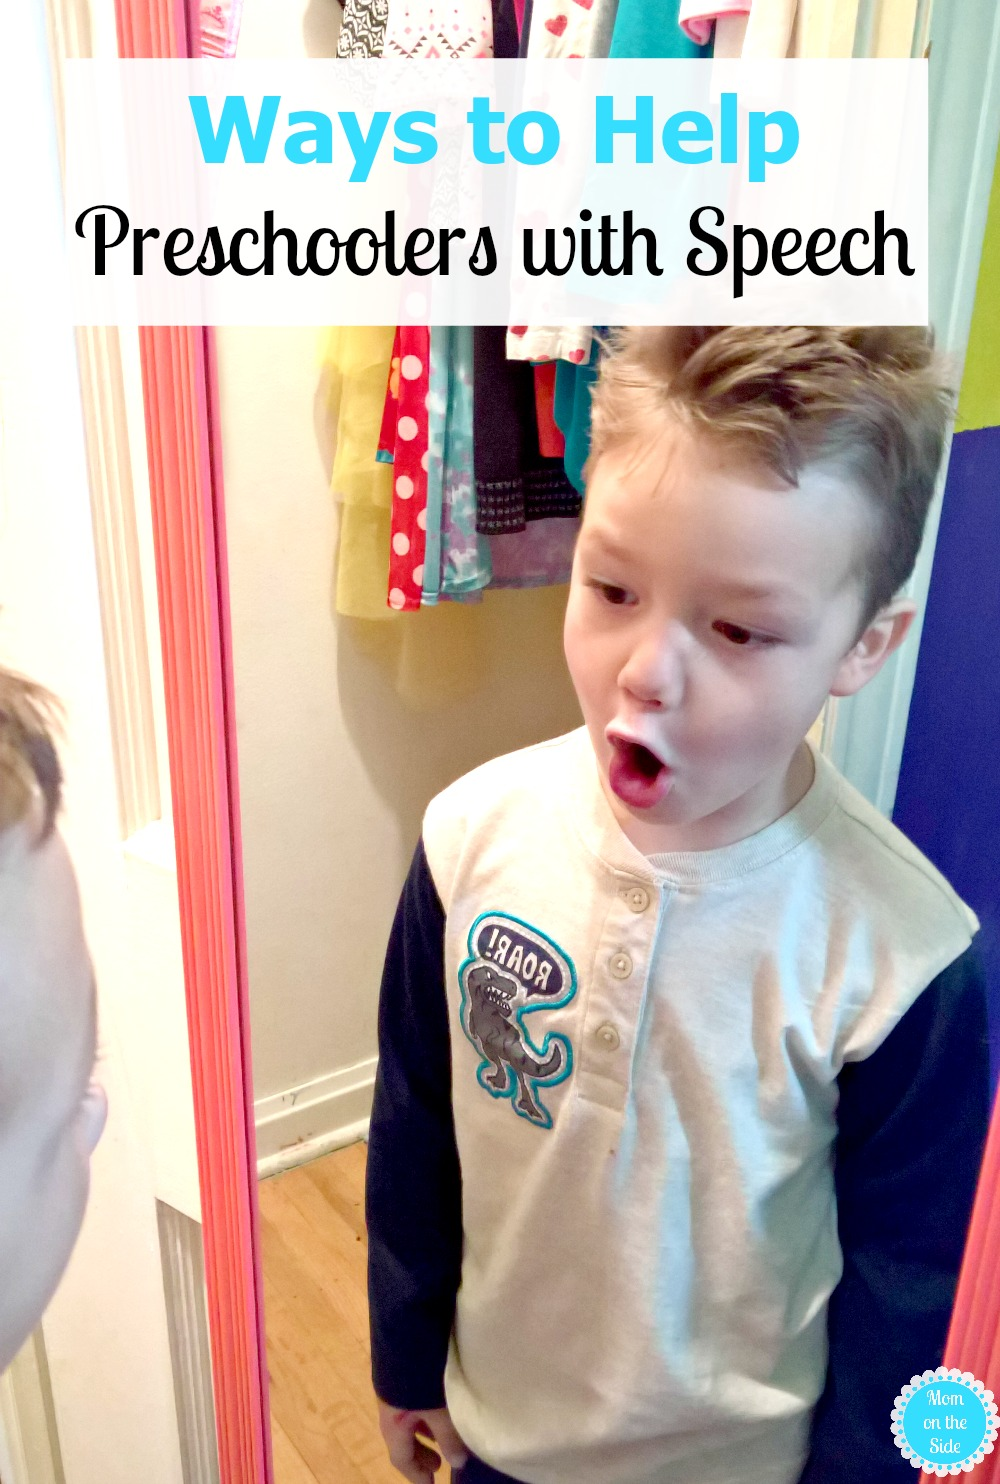 Different ways to help preschoolers with speech at home.